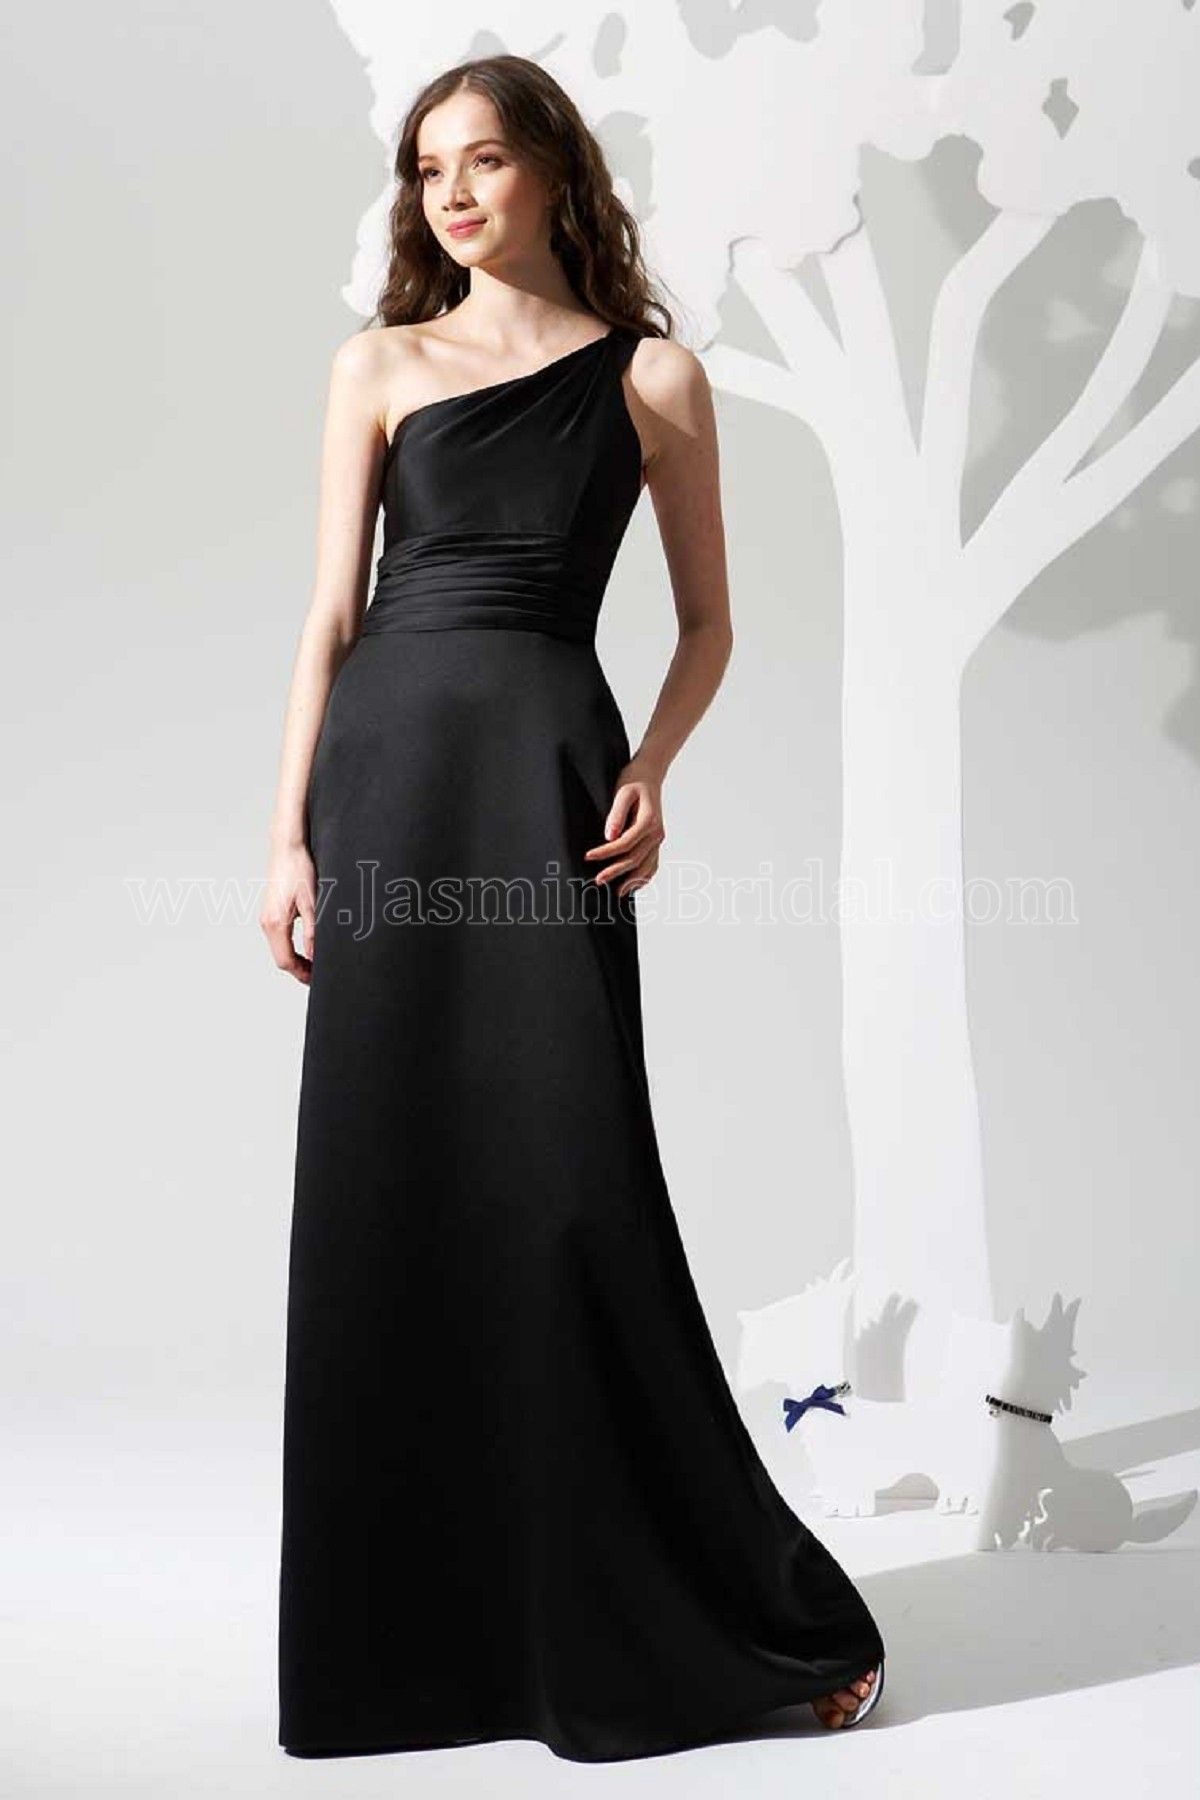 Jasmine Bridal dress at Anastasia\'s $189 with a $20 upcharge to ...